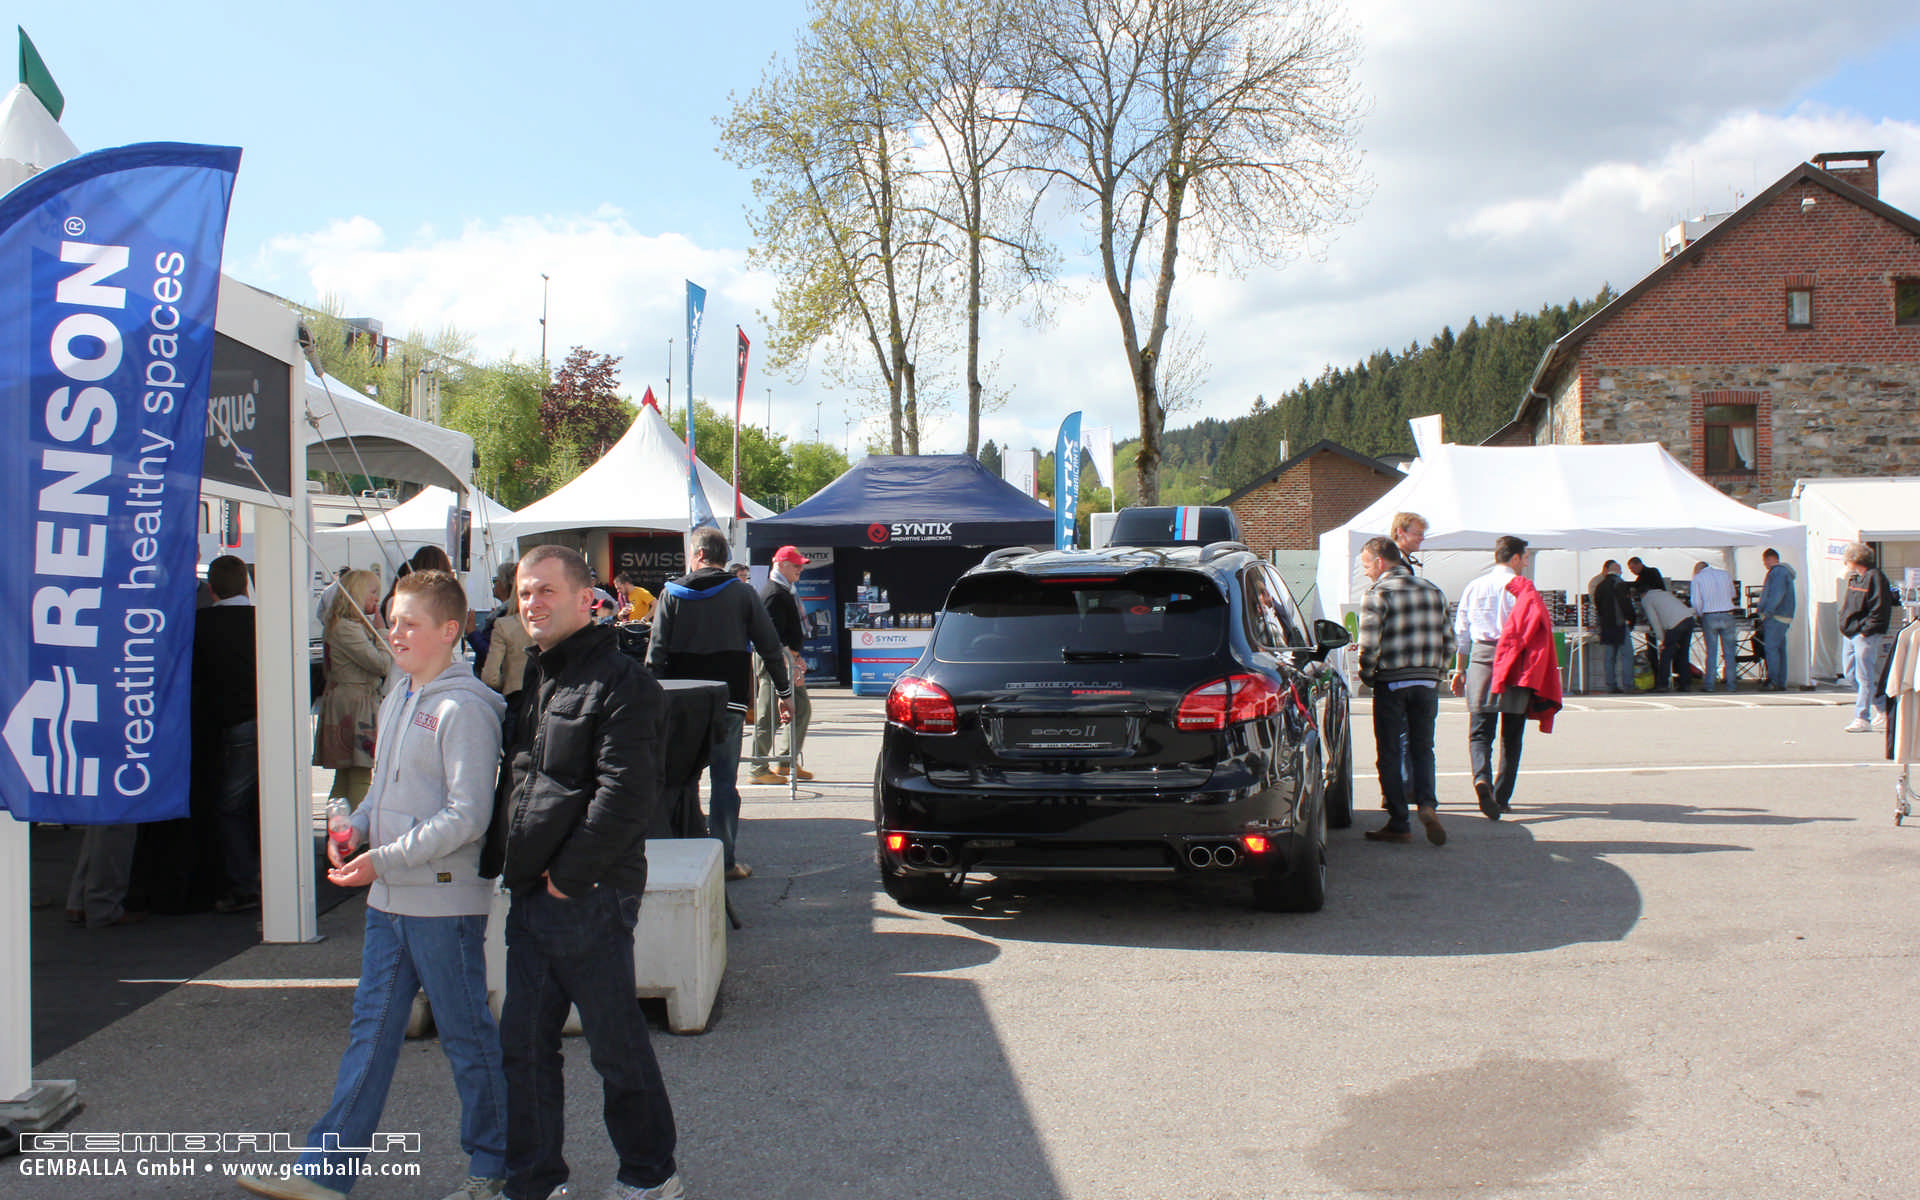 gemballa_gmbh_event_spa_2013_006